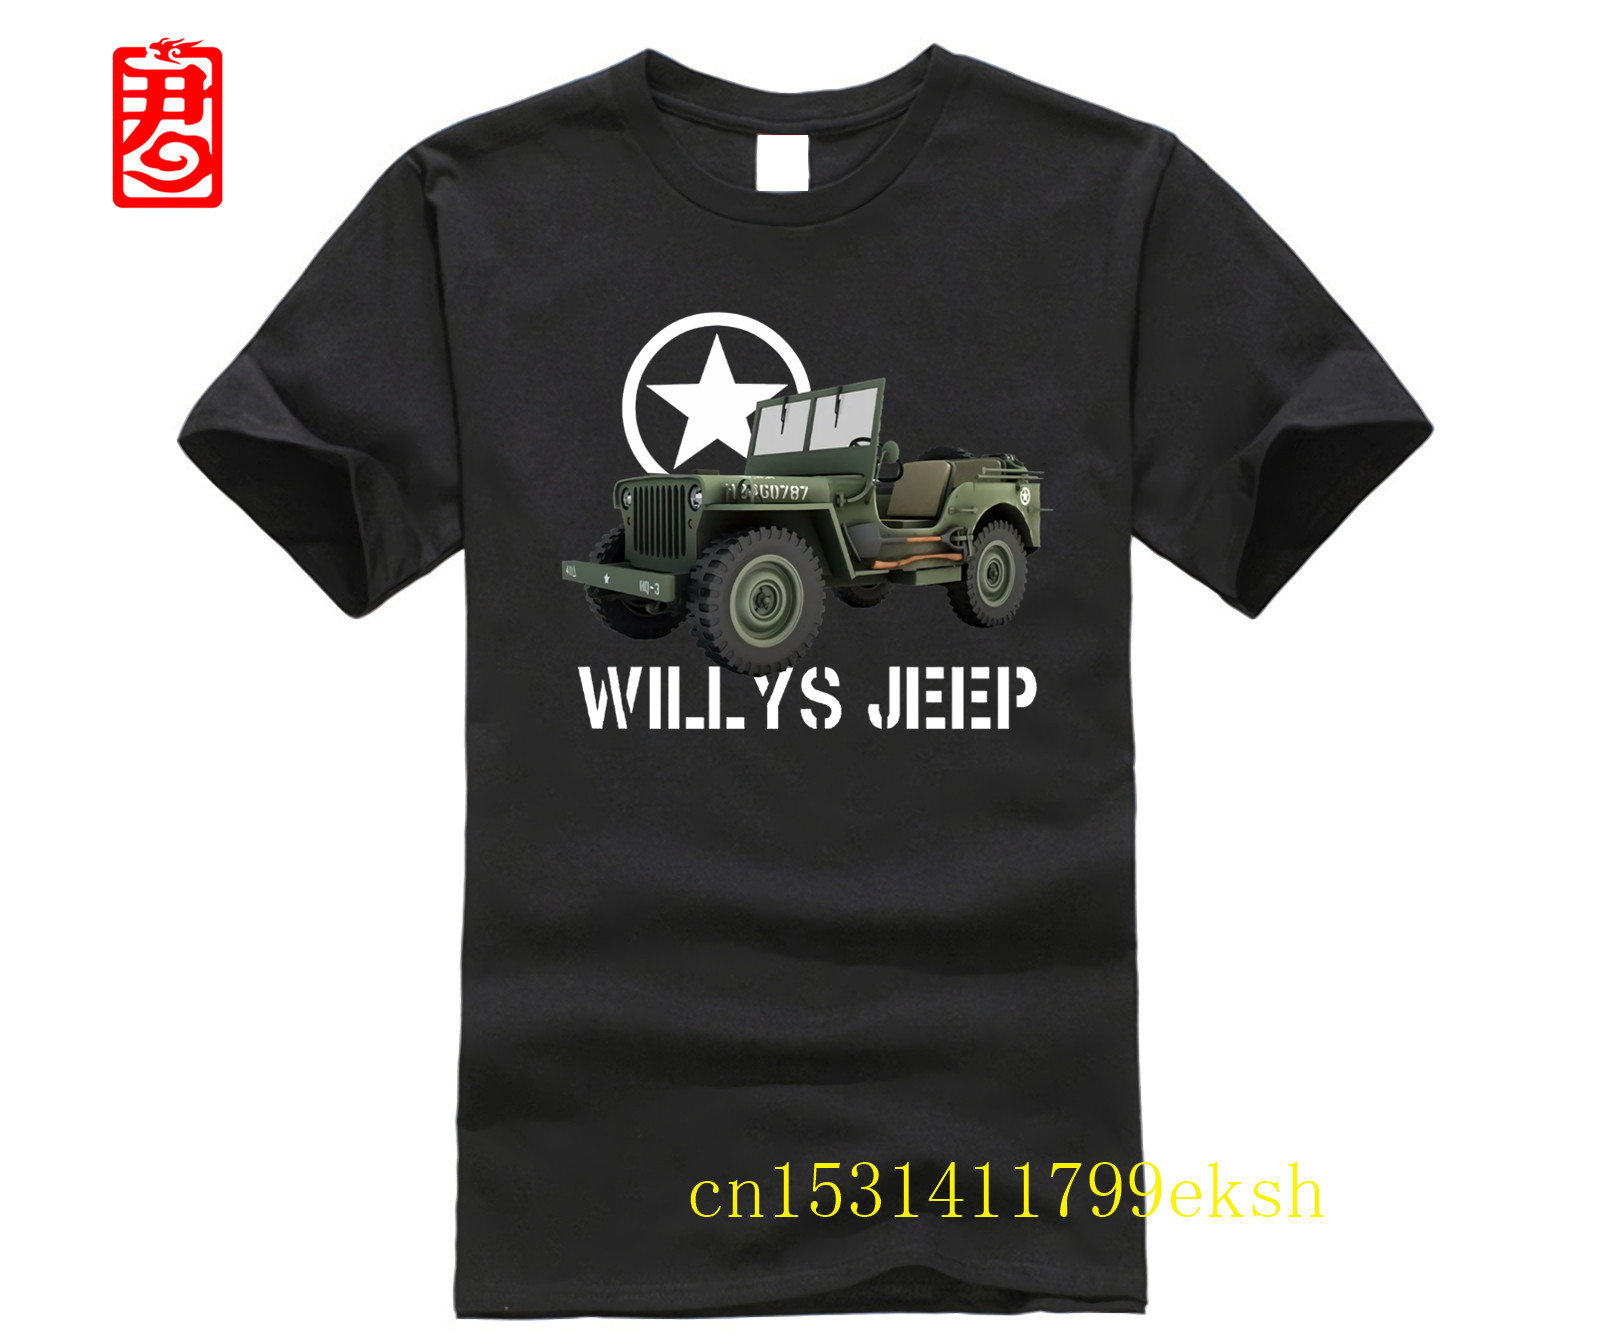 Willys jeep t-shirt military nostalgia WW2 d-day historical vehicle allied WWII